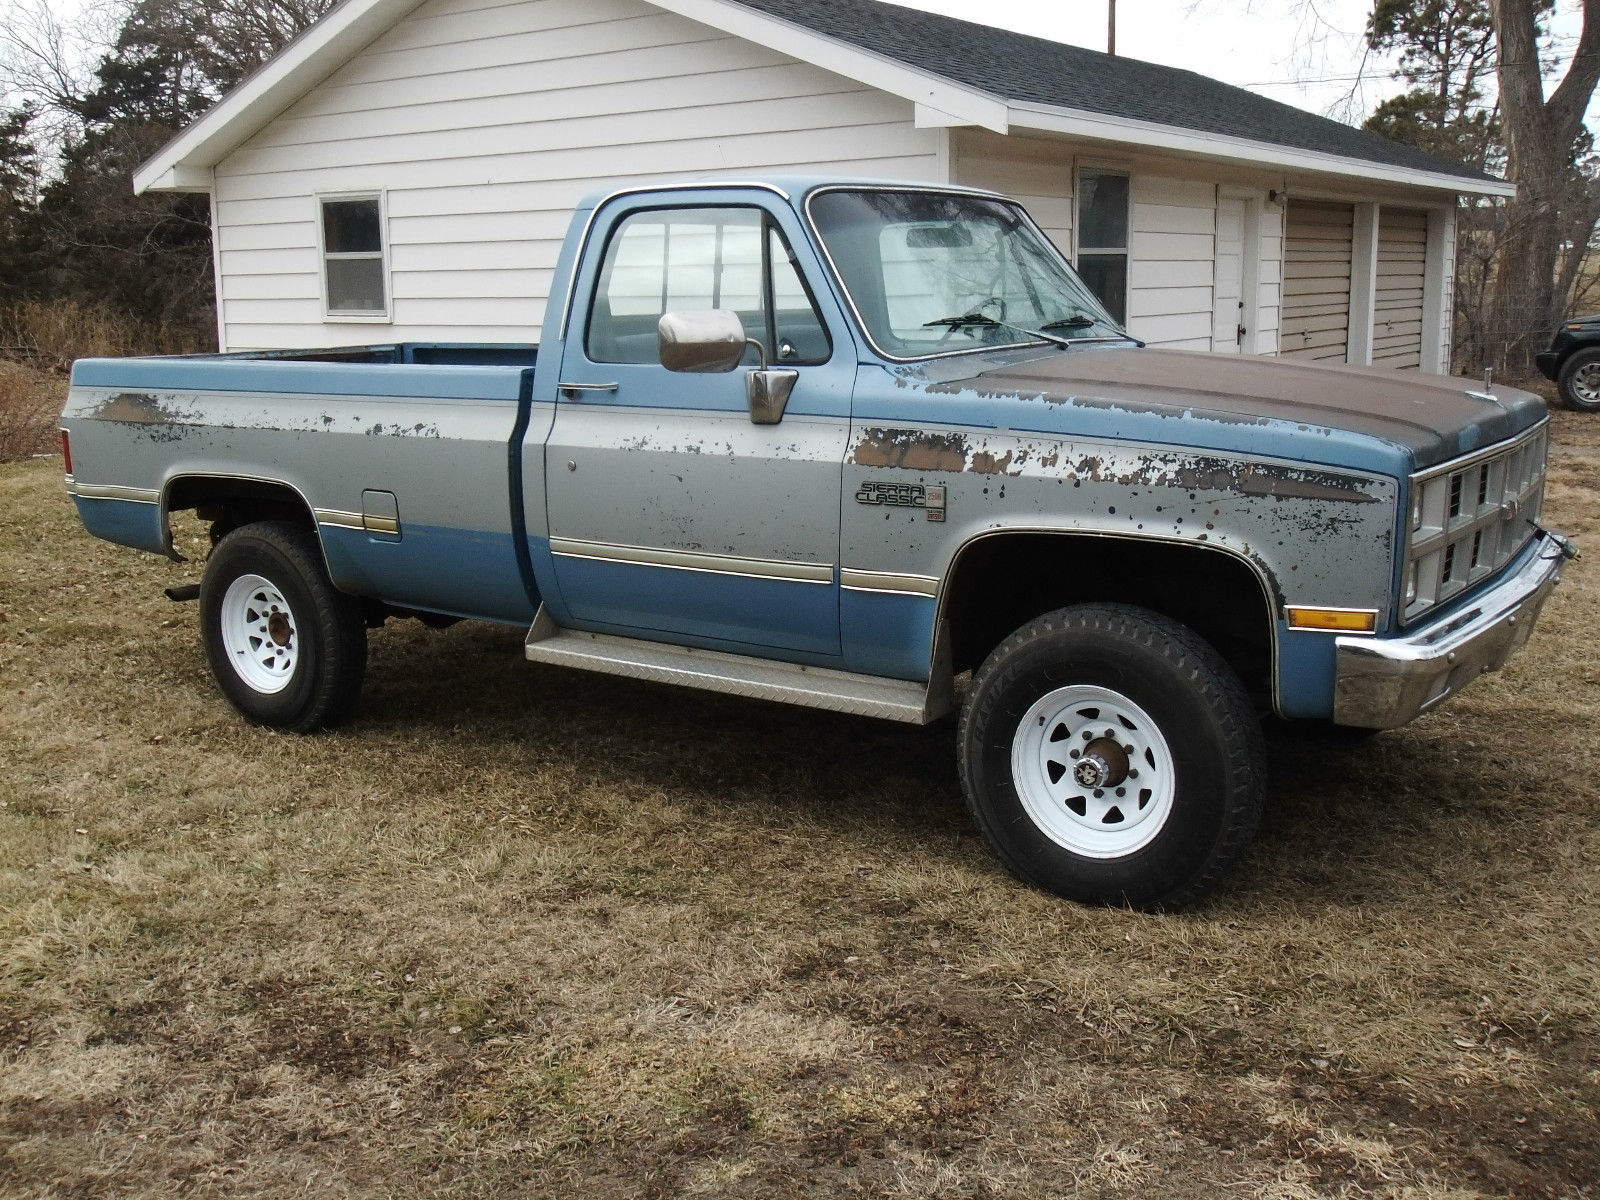 Chevy 2500 Diesel For Sale >> 1982 GMC K2500 4X4 6.2L DIESEL OEM paint 99% rustfree Chevrolet C/K Pickup 2500 - Classic GMC ...